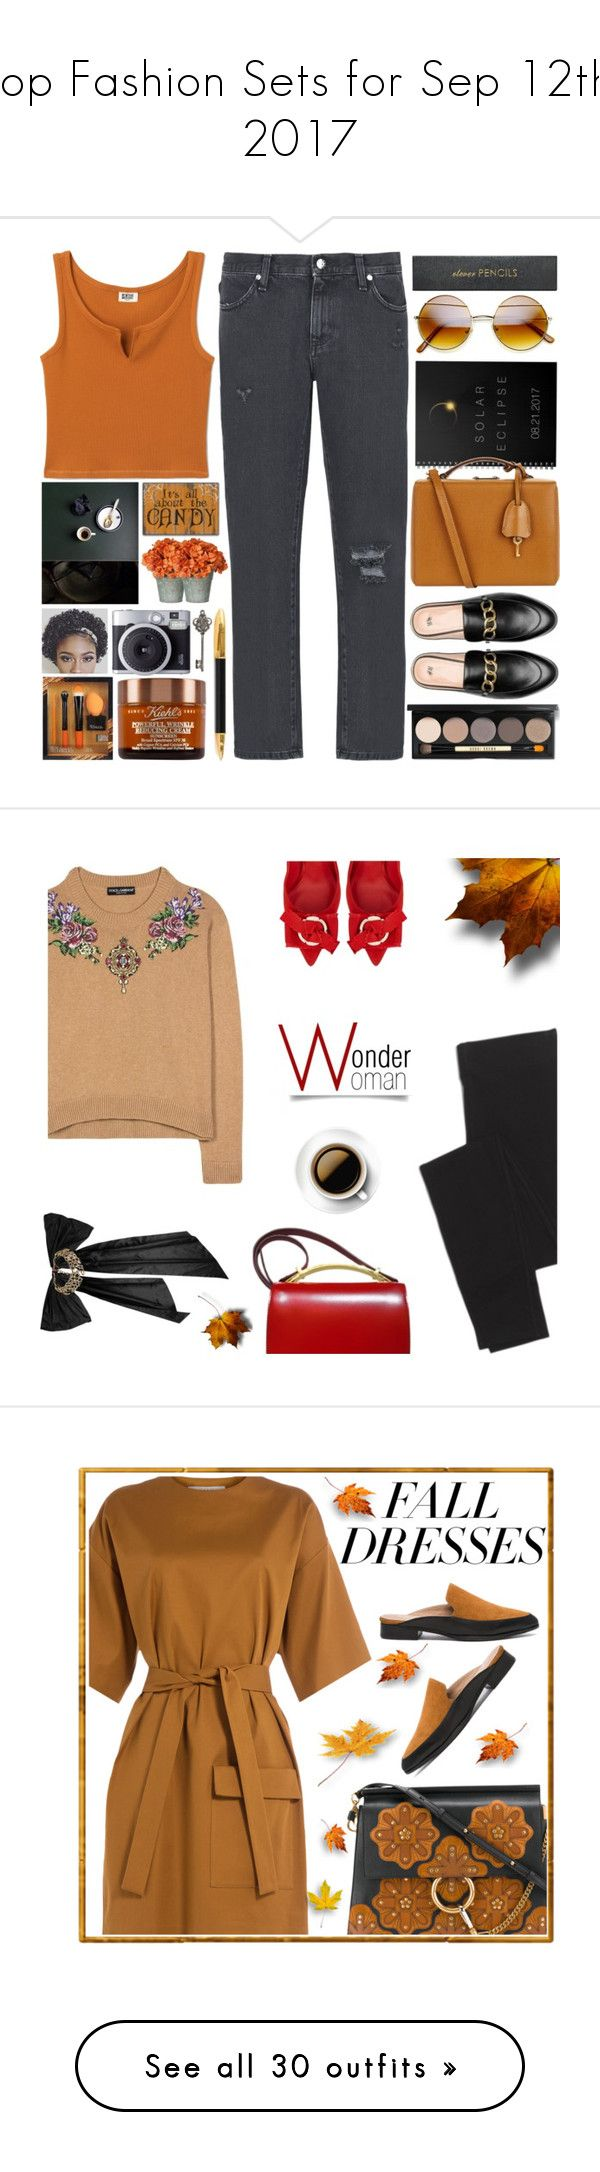 """Top Fashion Sets for Sep 12th, 2017"" by polyvore ❤ liked on Polyvore featuring 8, Mark Cross, Sugar Paper, Sloane Stationery, Graham & Brown, Bobbi Brown Cosmetics, Madewell, Dolce&Gabbana, Salvatore Ferragamo and Oscar de la Renta"